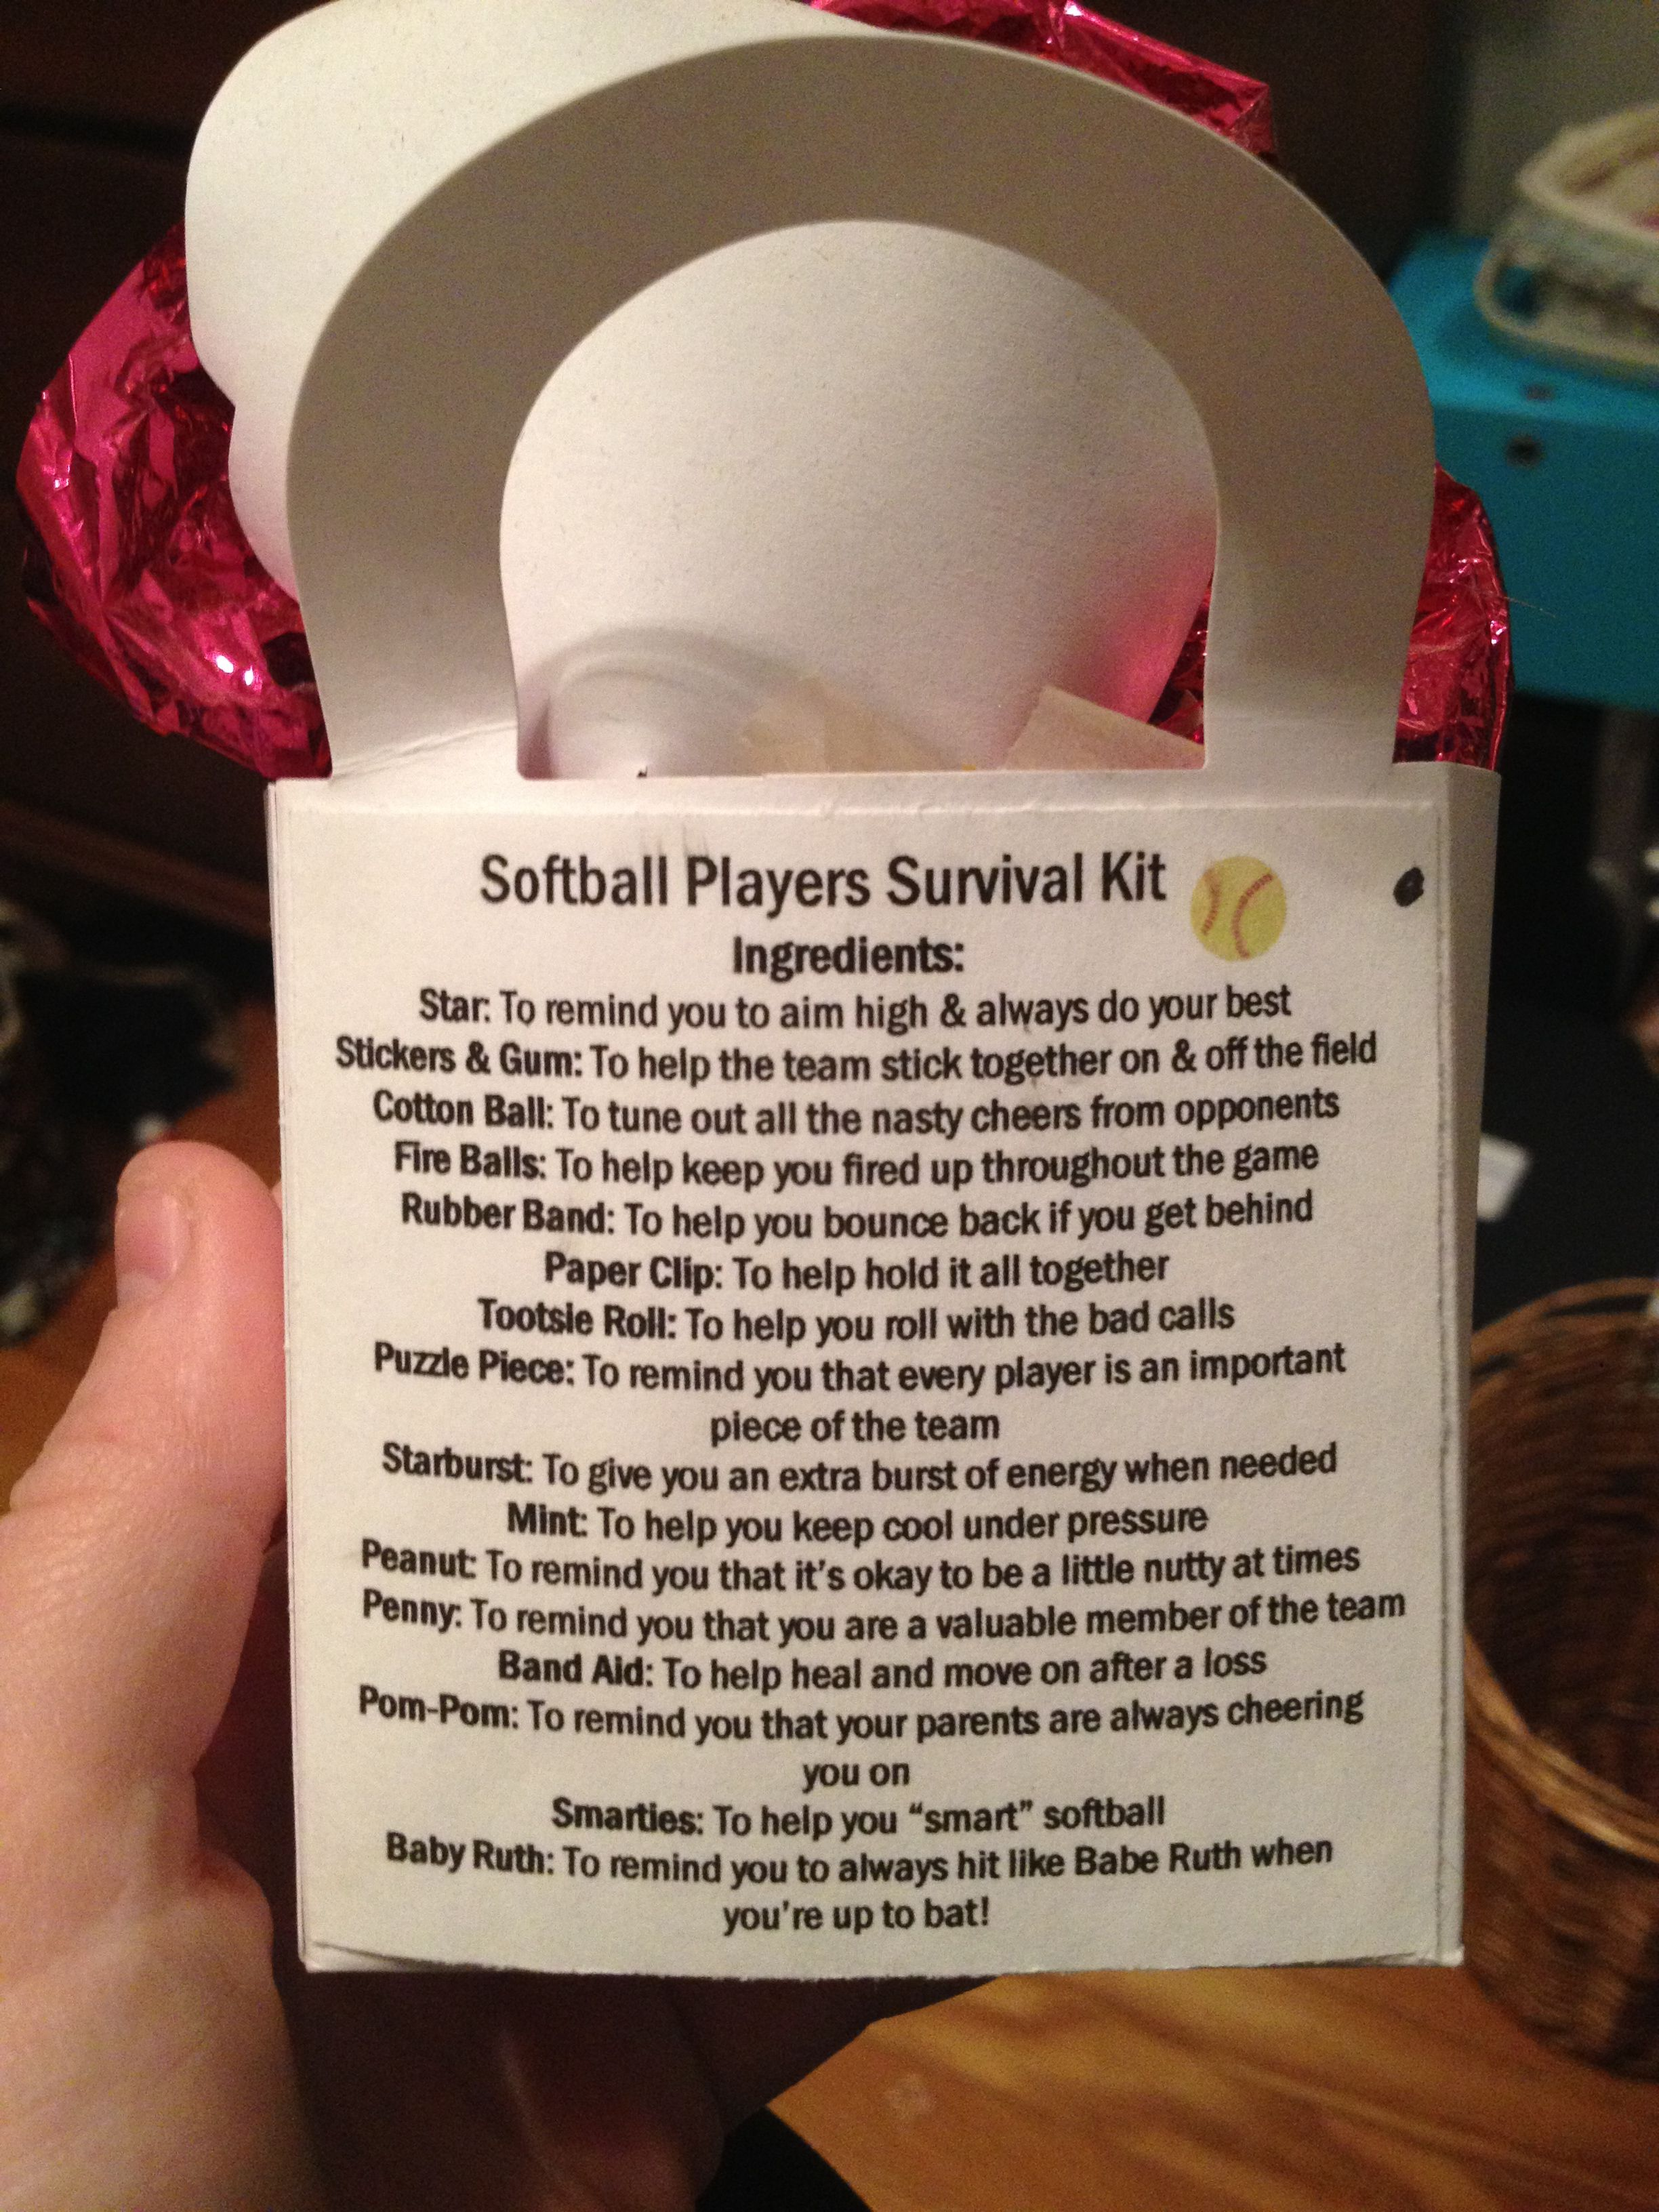 6bb08c728ca2 Softball survival kit. I gave these out to teammates after the season. I  filled little goody bags that included the